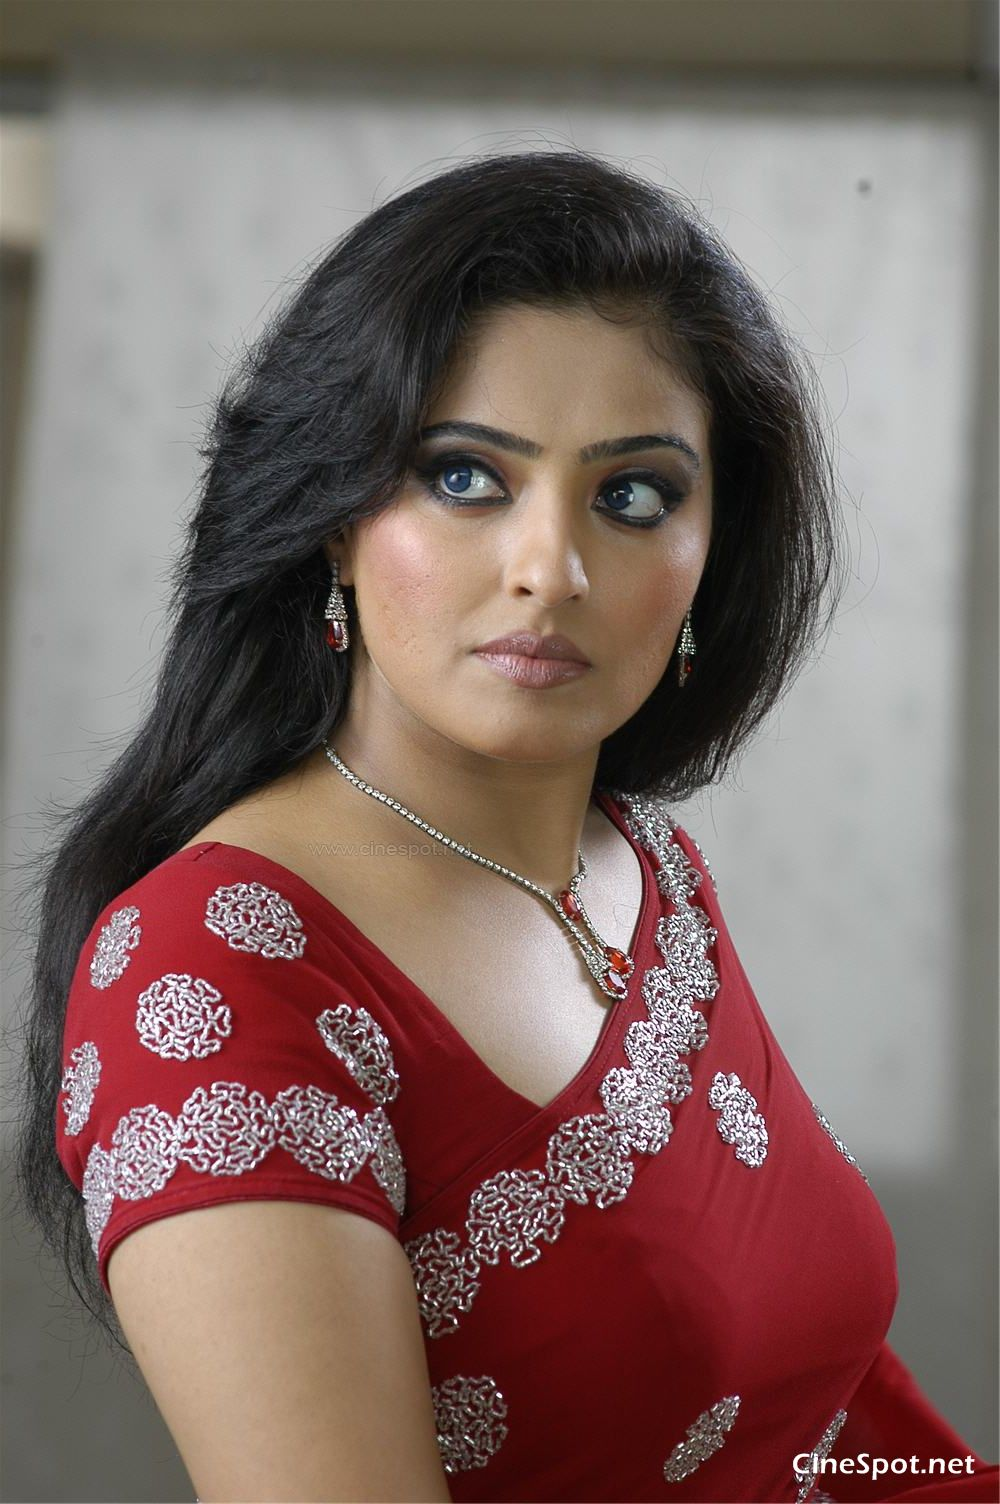 SouthIndian Actress Gallery: Mumtaz Telgu Actress Hot Sexy